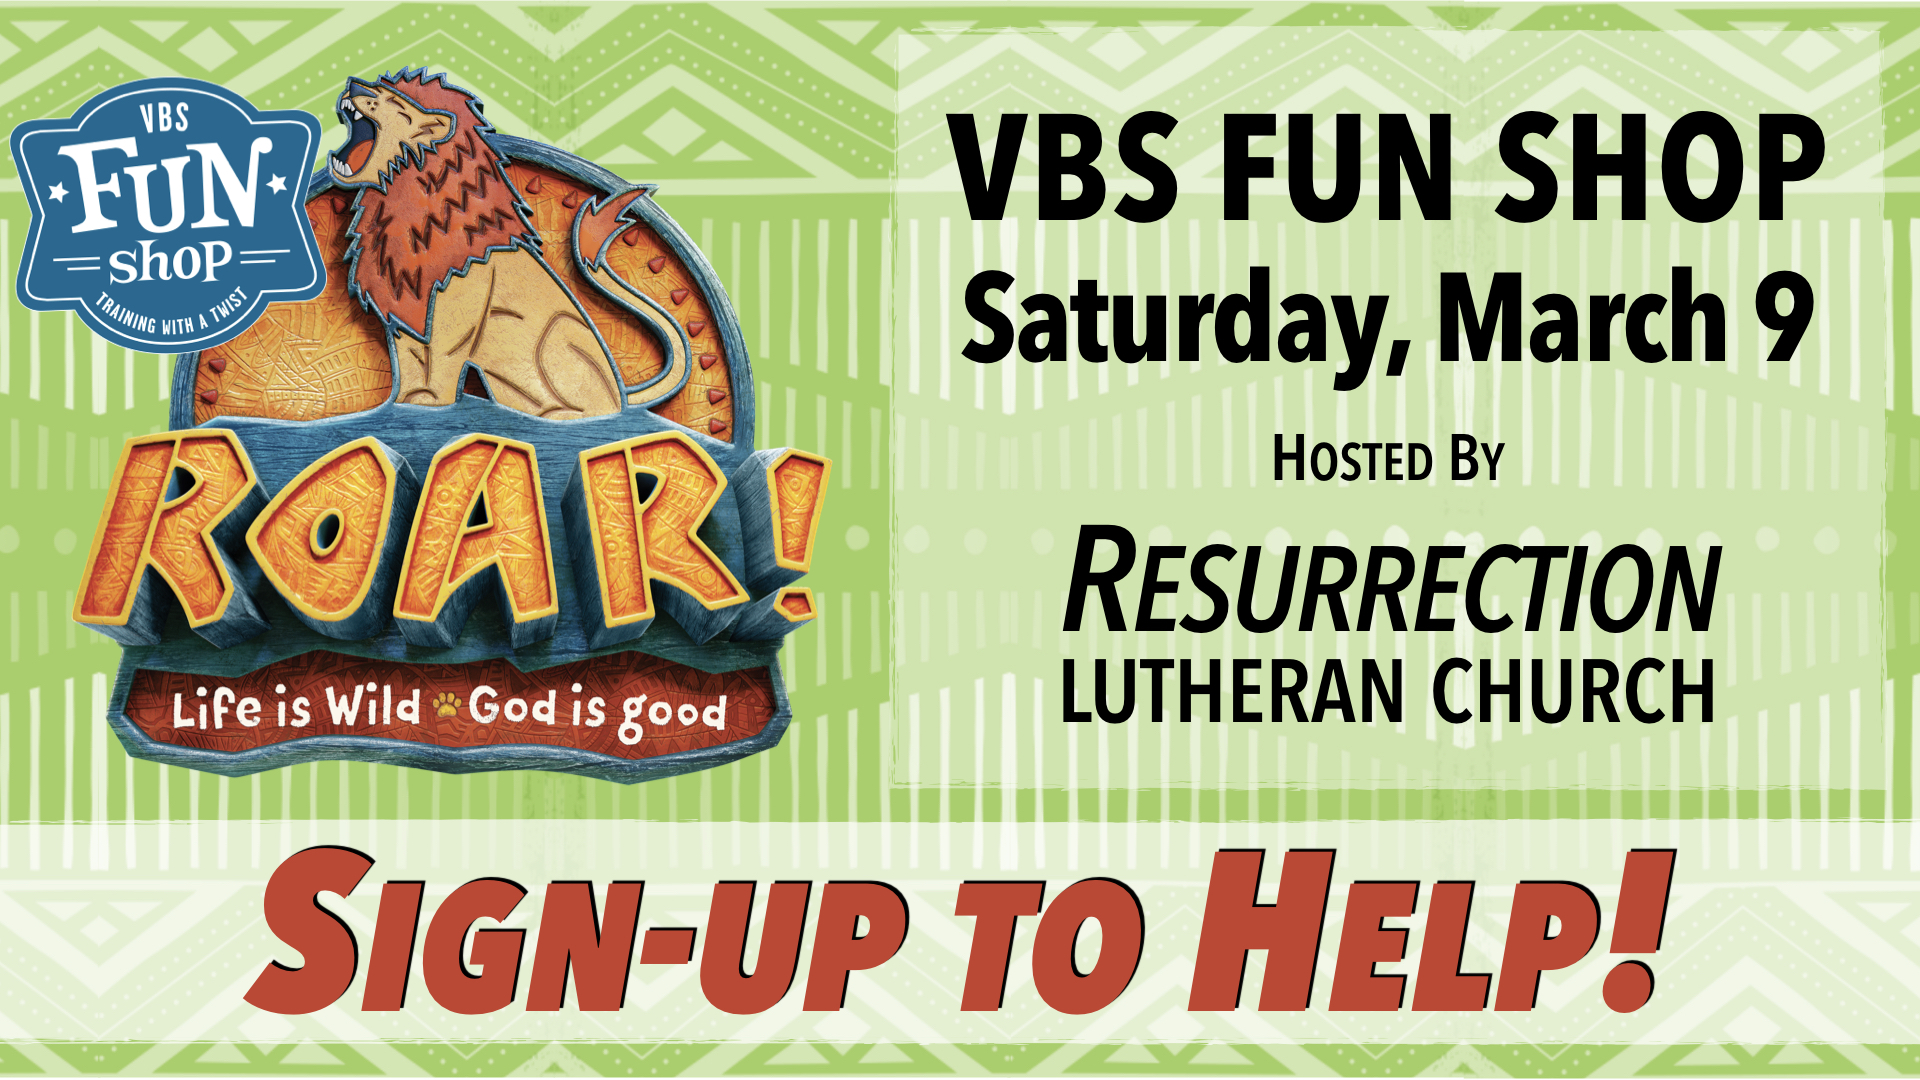 Sign Up to Help with VBS Fun Shop at RLC